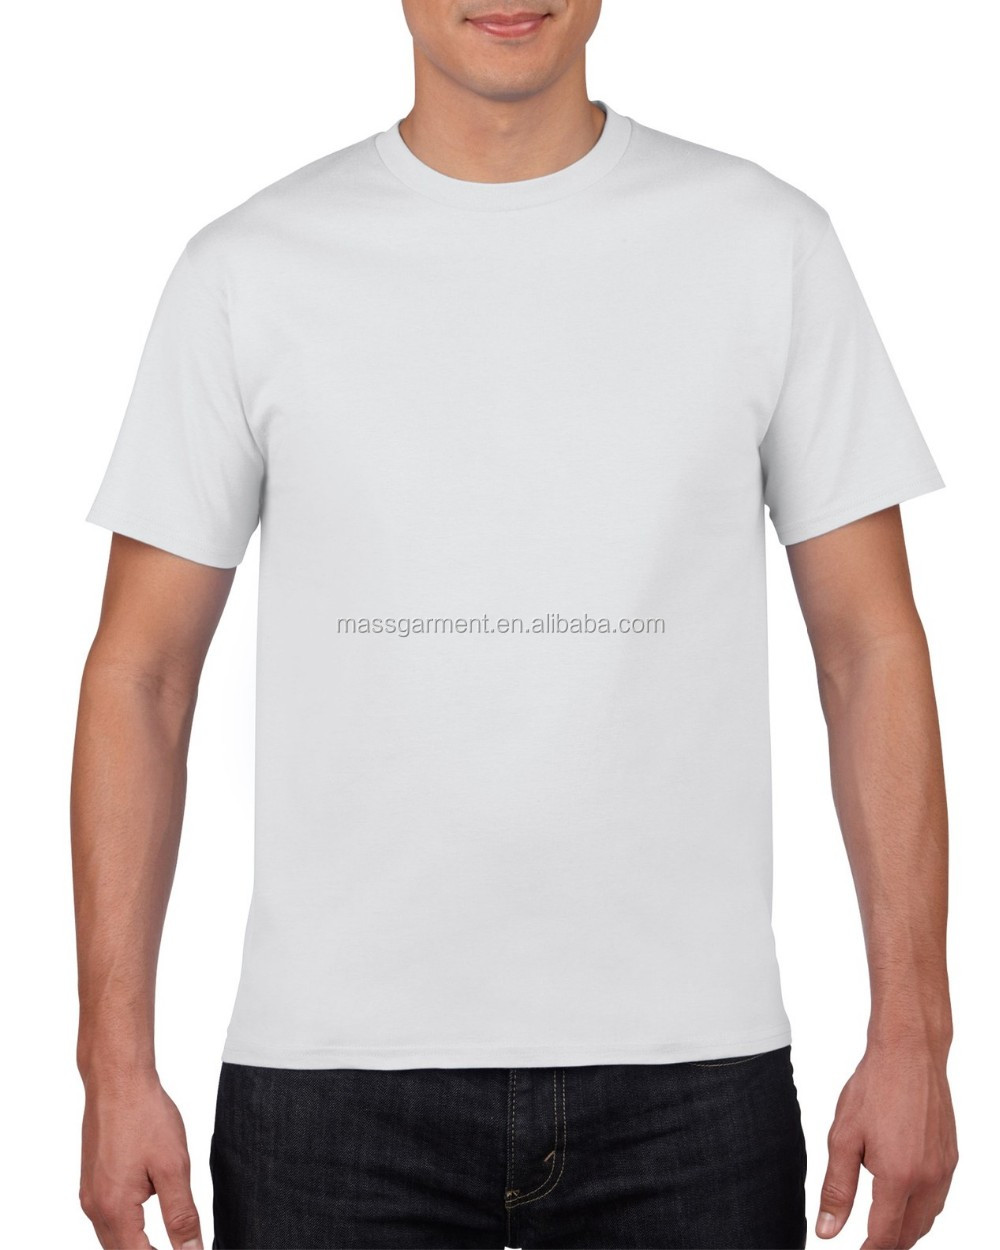 White T-Shirts in Bulk, Wholesale Pricing There's nothing like a good white t-shirt that is bright, holds its shape, and fits well. The ideal white t-shirts are reliable when you want classic comfort and style.